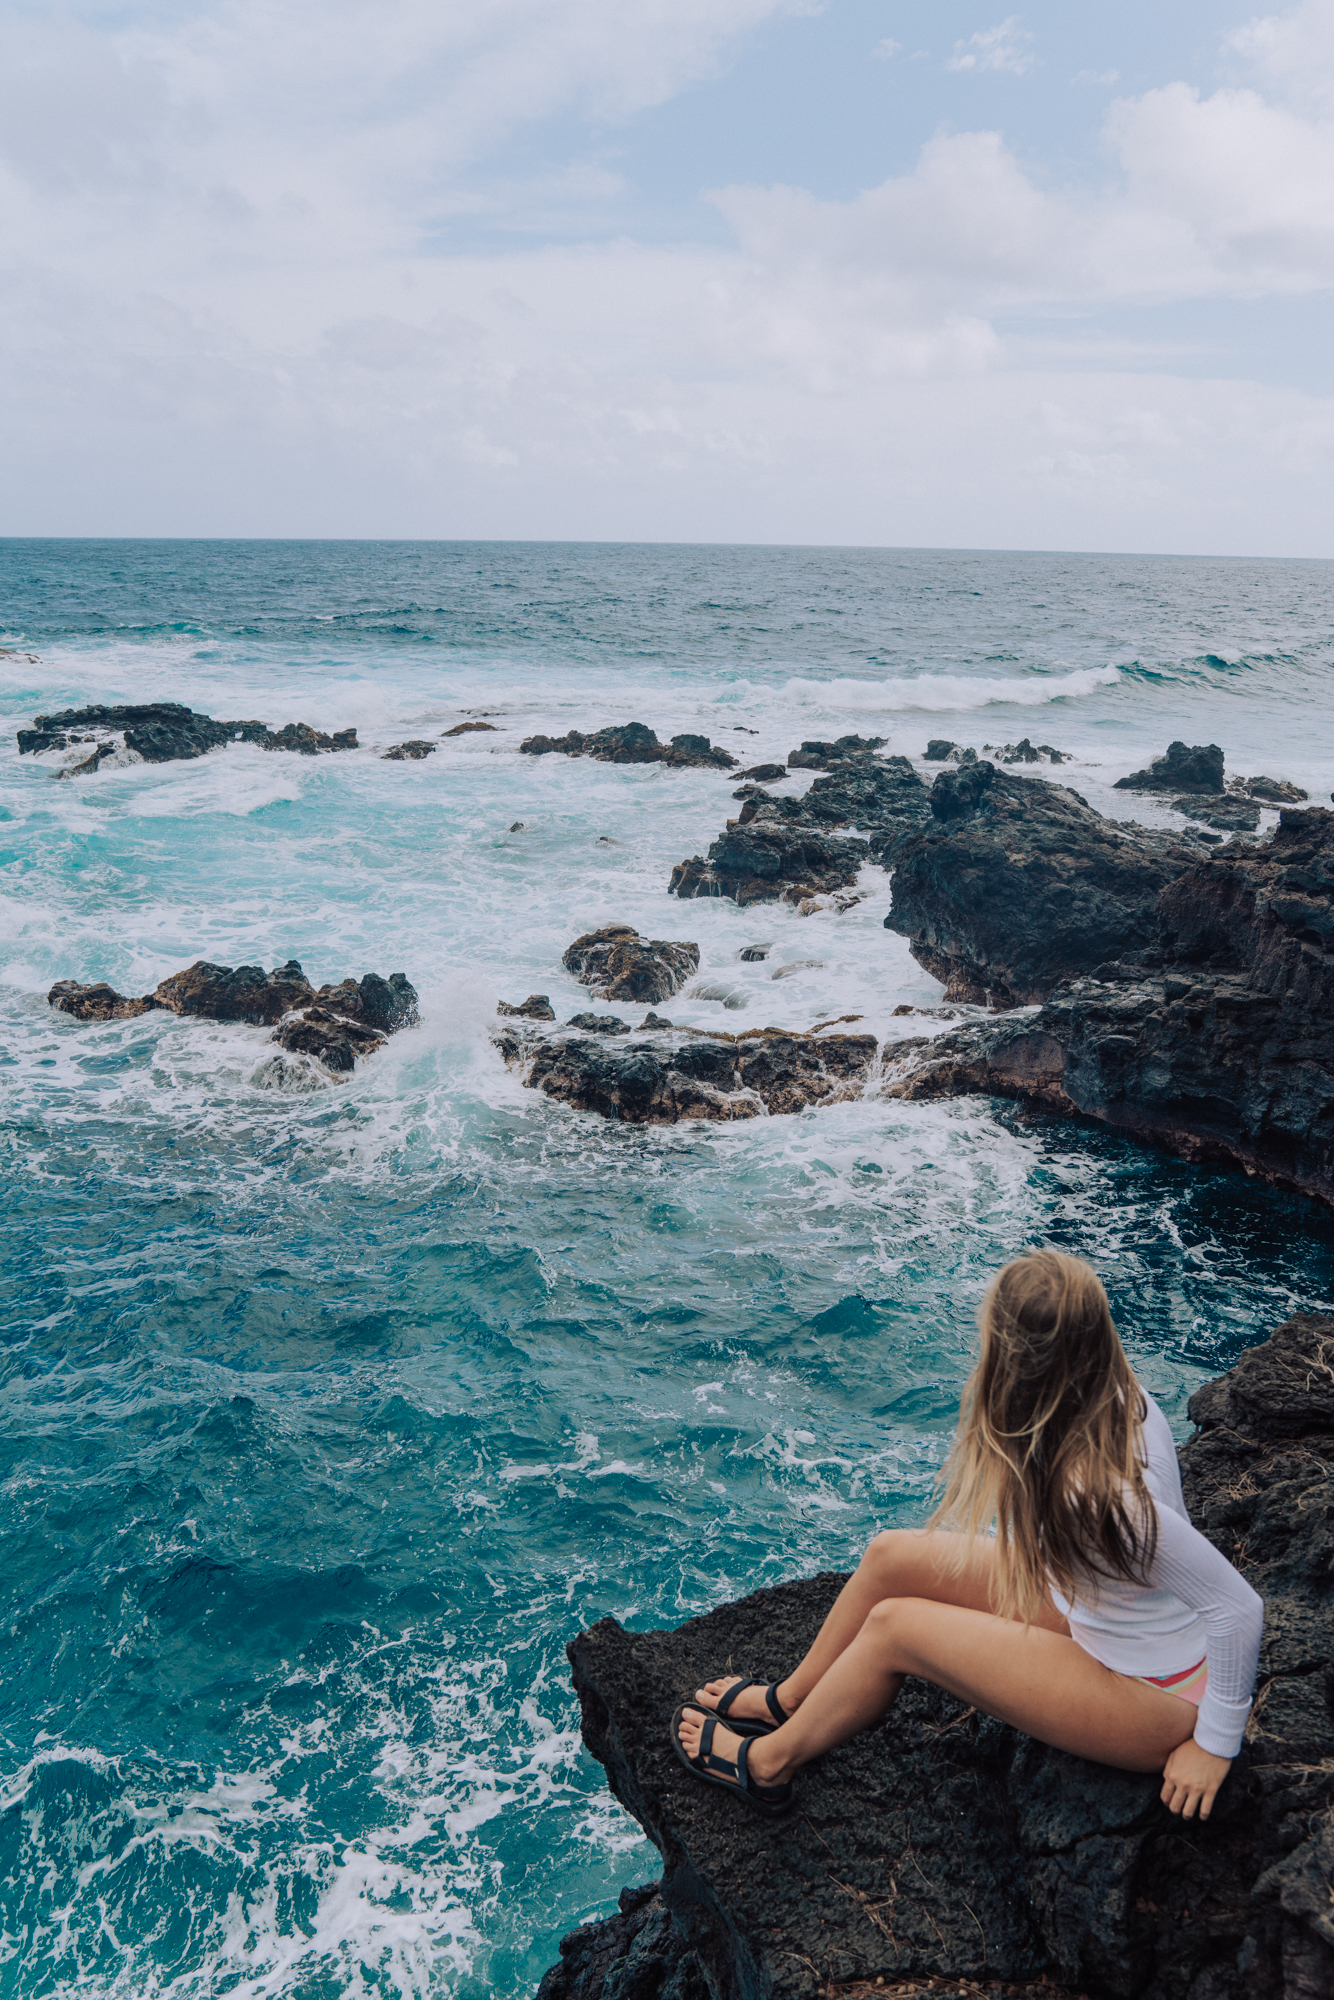 woman overlooking the ocean below from a cliff.